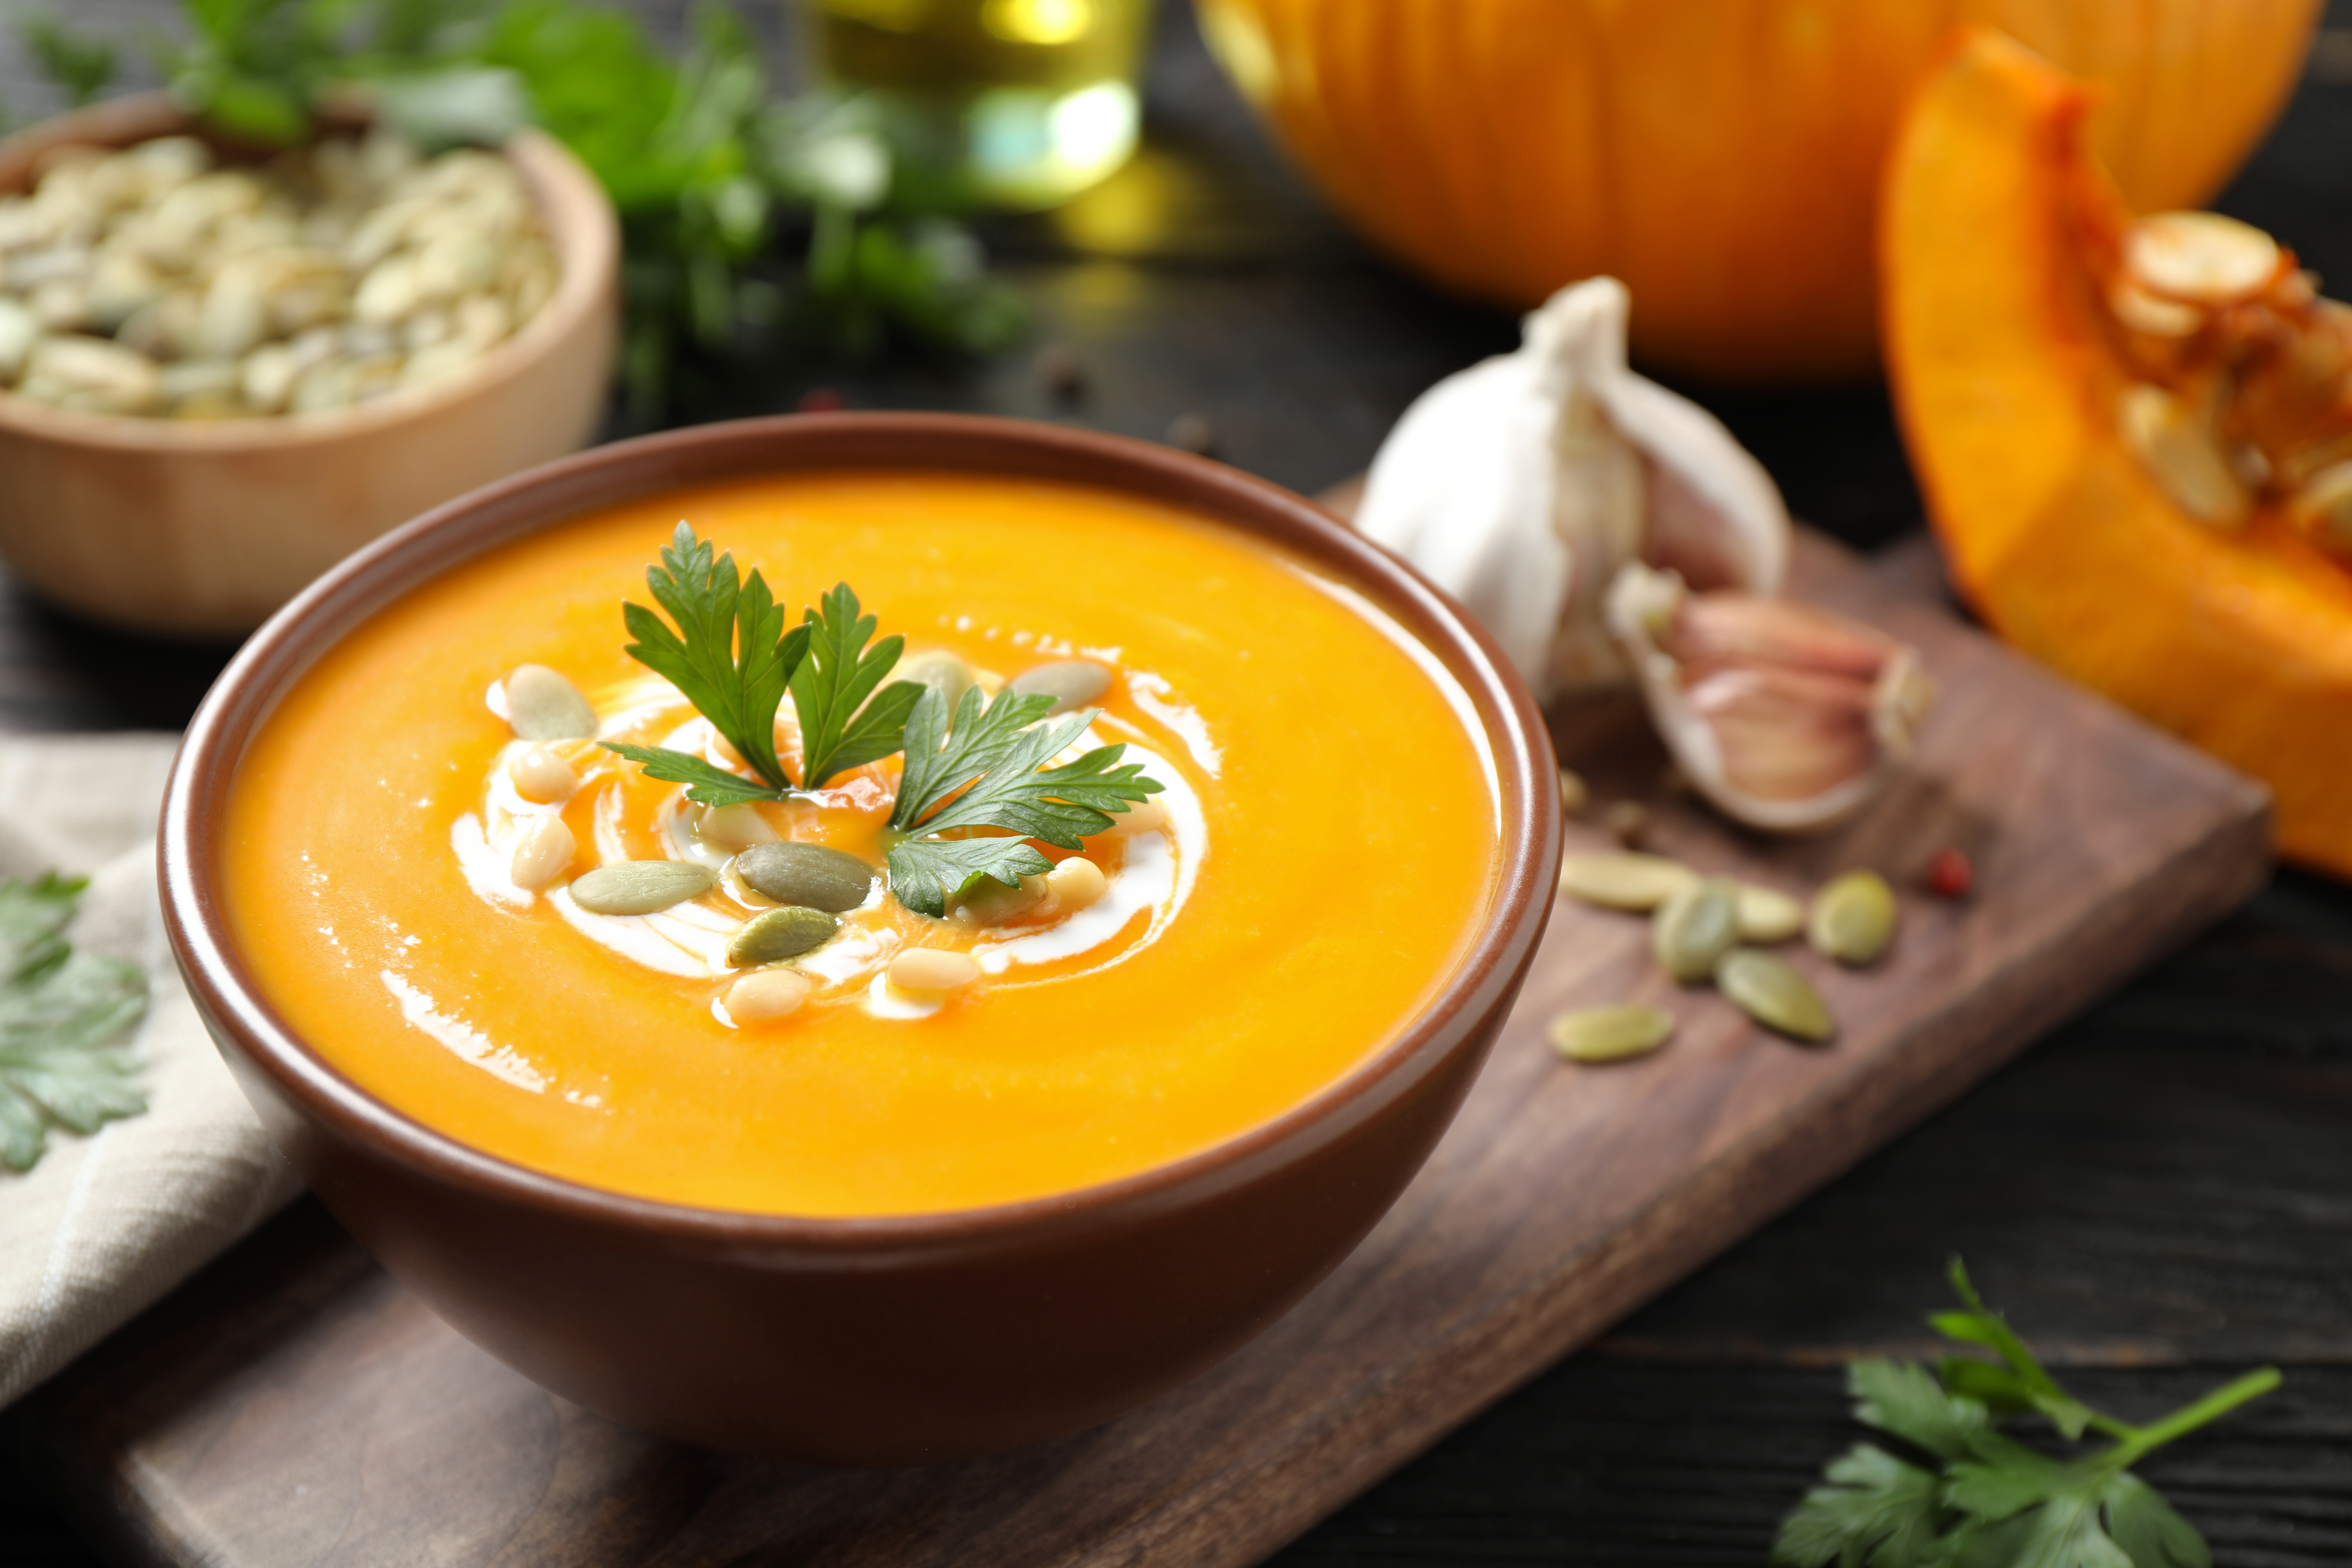 Pumpkin soup is a fall and winter favorite and easy to make utilizing canned pumpkin.